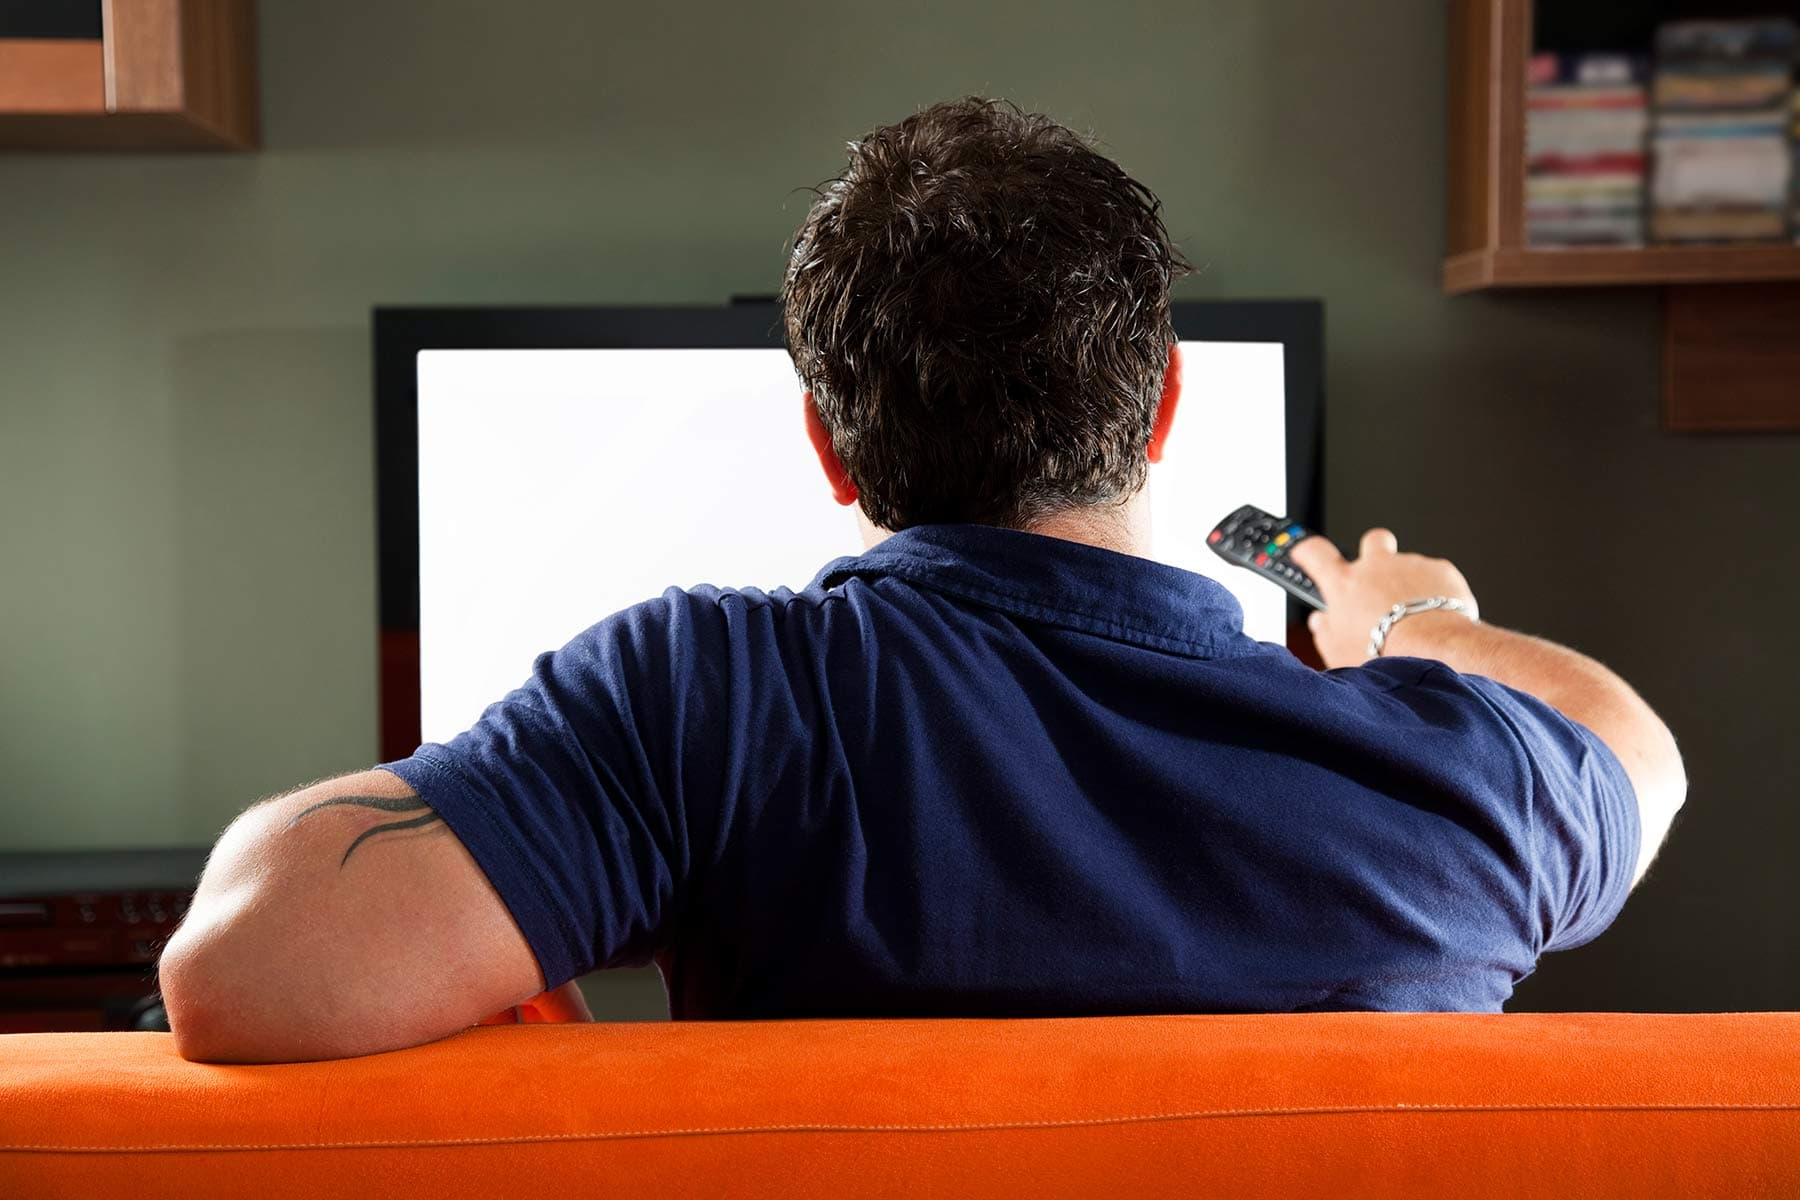 TV, Video Games, Books and Sports Taking Toll on Sleep